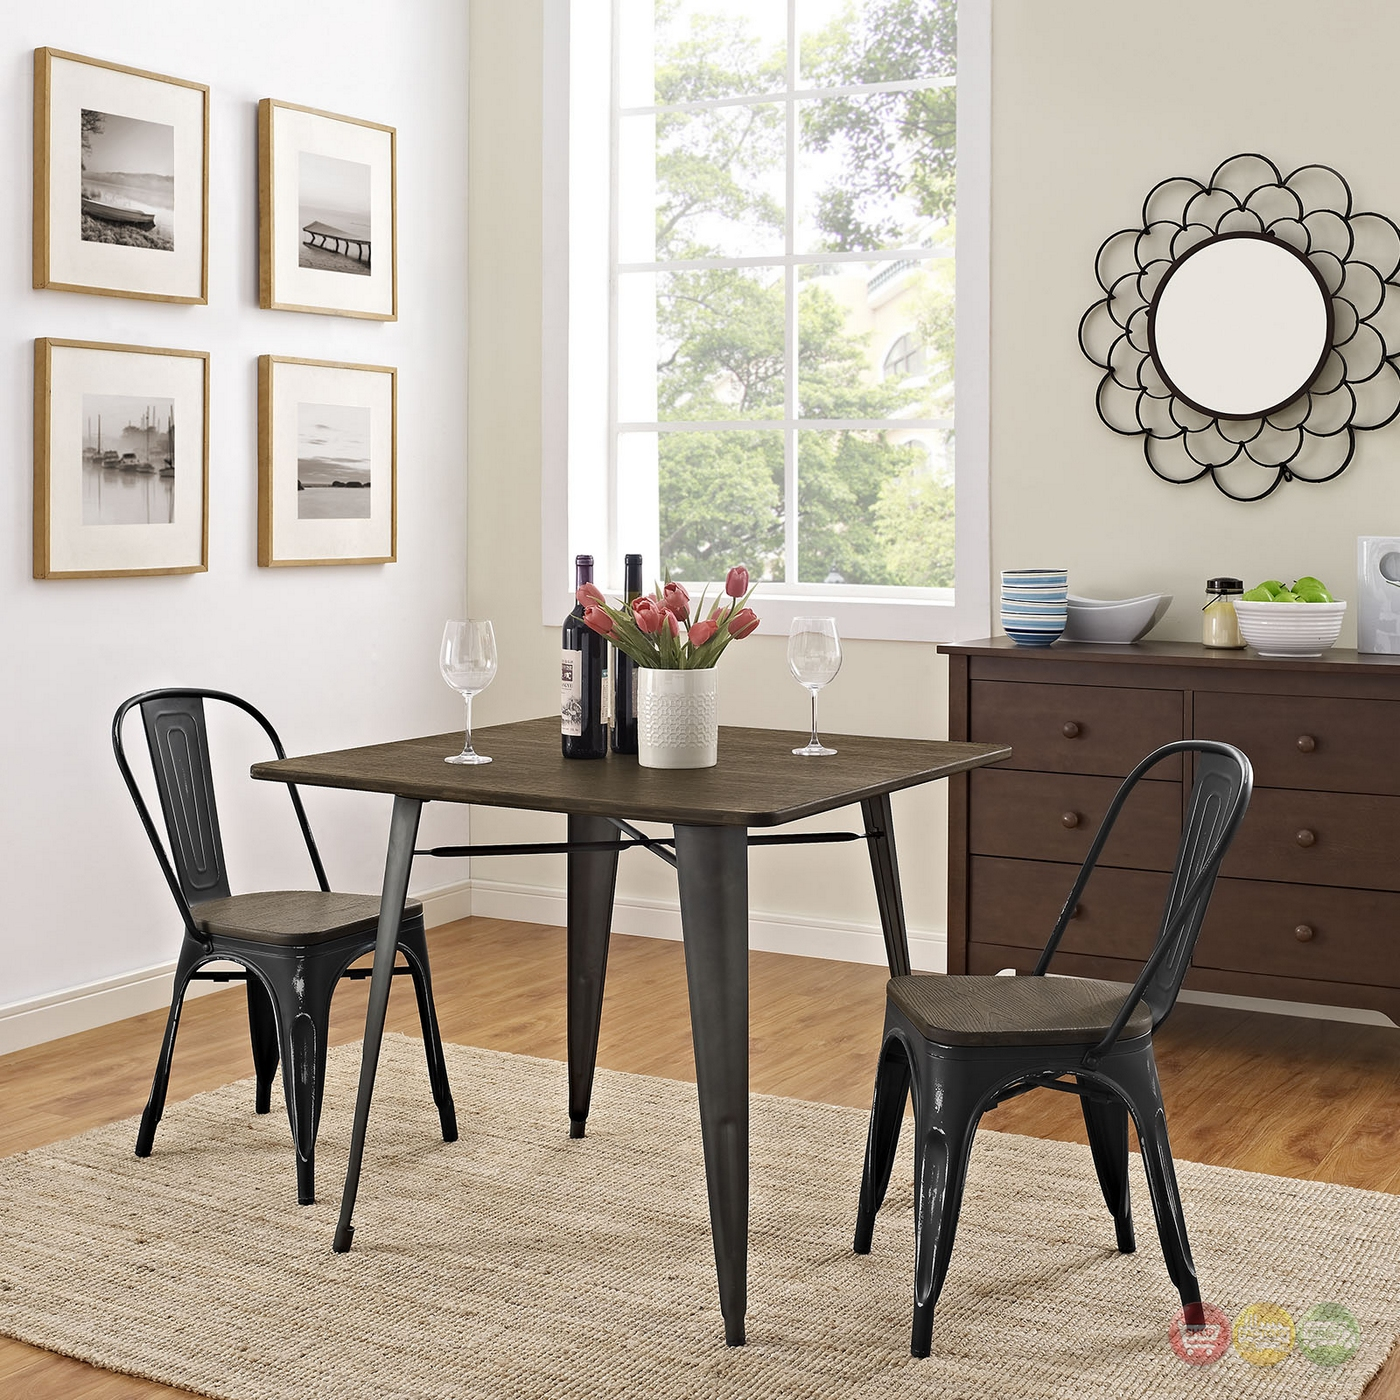 """Square Rectangular Modern Dining Table Legs Industrial: Alacrity Industrial 36"""" Square Wood Dining Table With"""